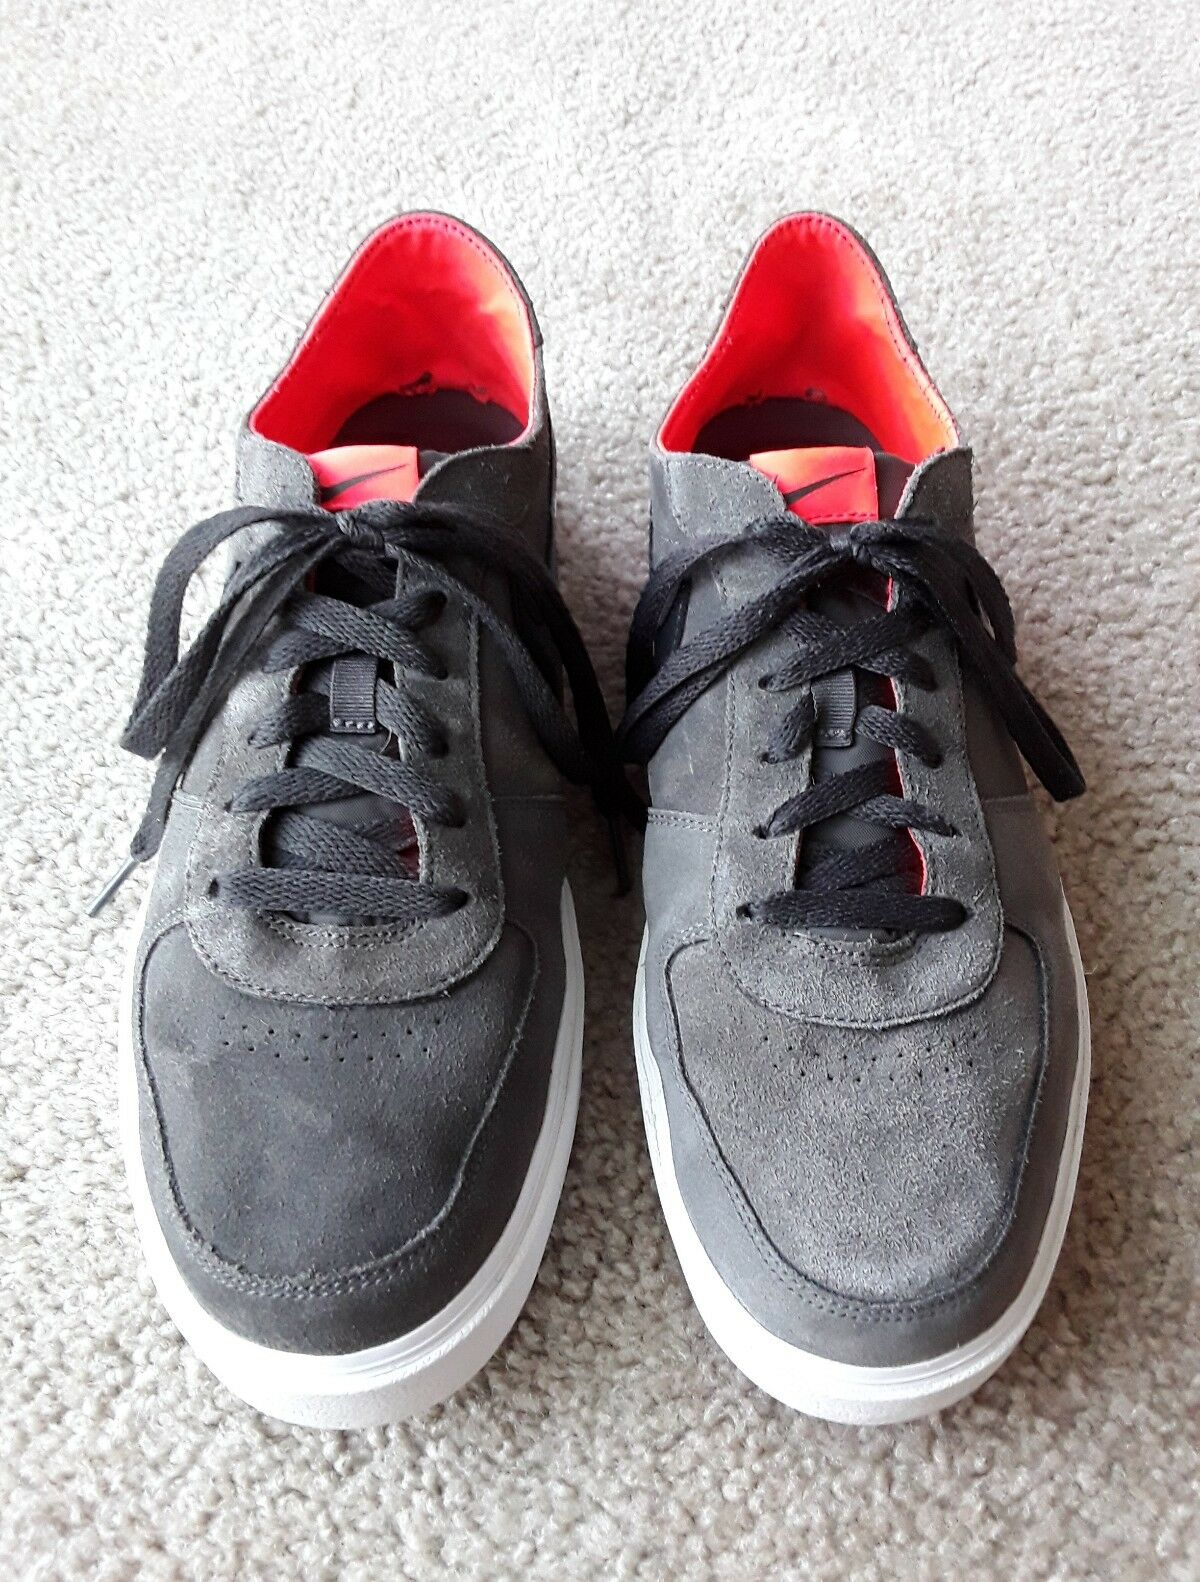 NIKE Gray Red Suede Black Red Gray Skateboard Shoes Men's Size 12 Running  513676-006 8513fe